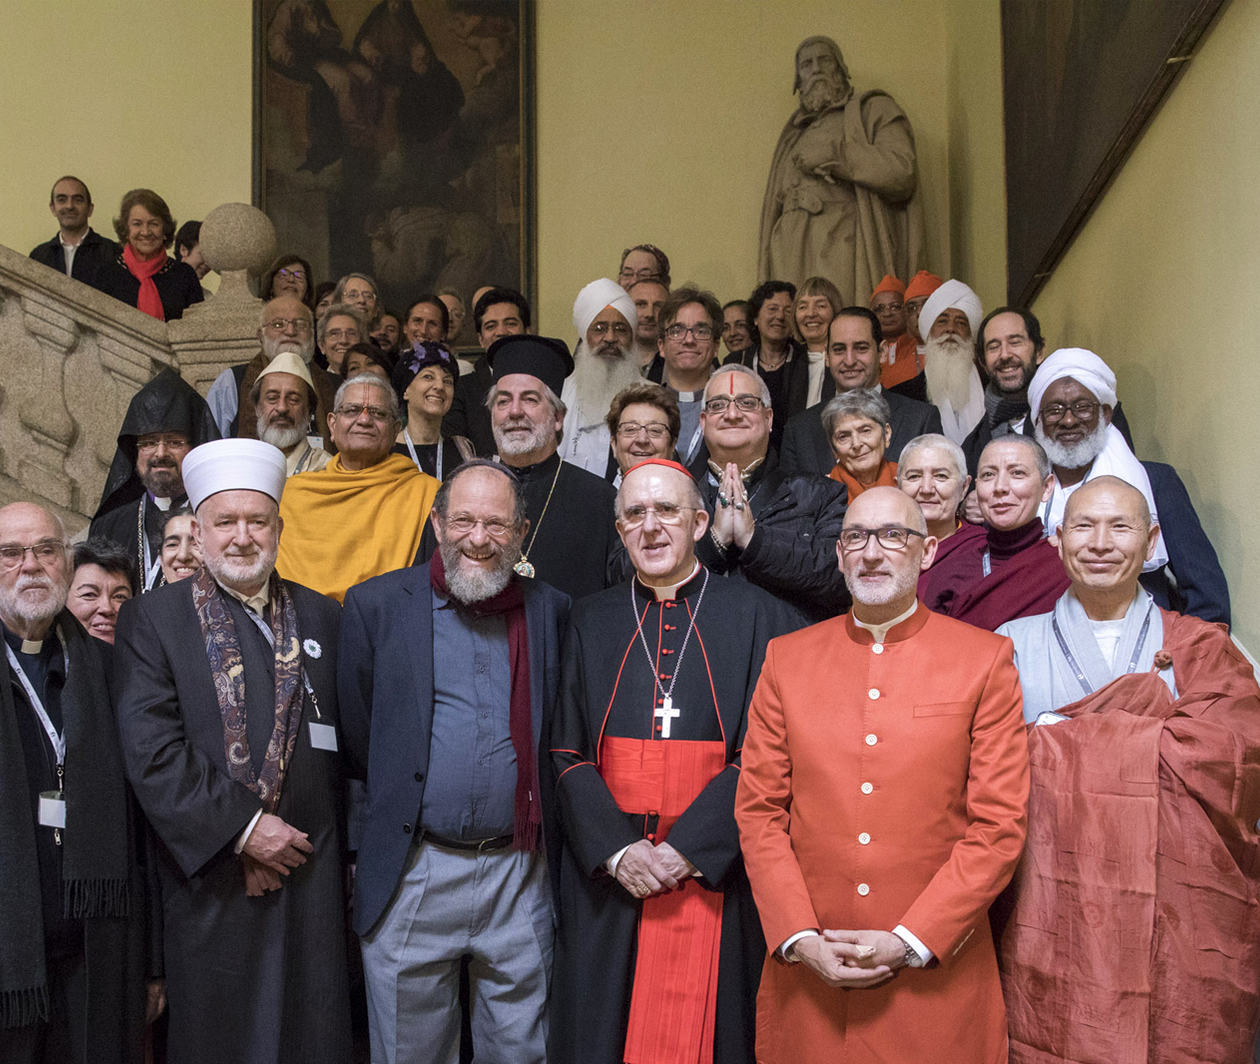 Why Religion Matters: Religious Literacy, Culture and Diversity